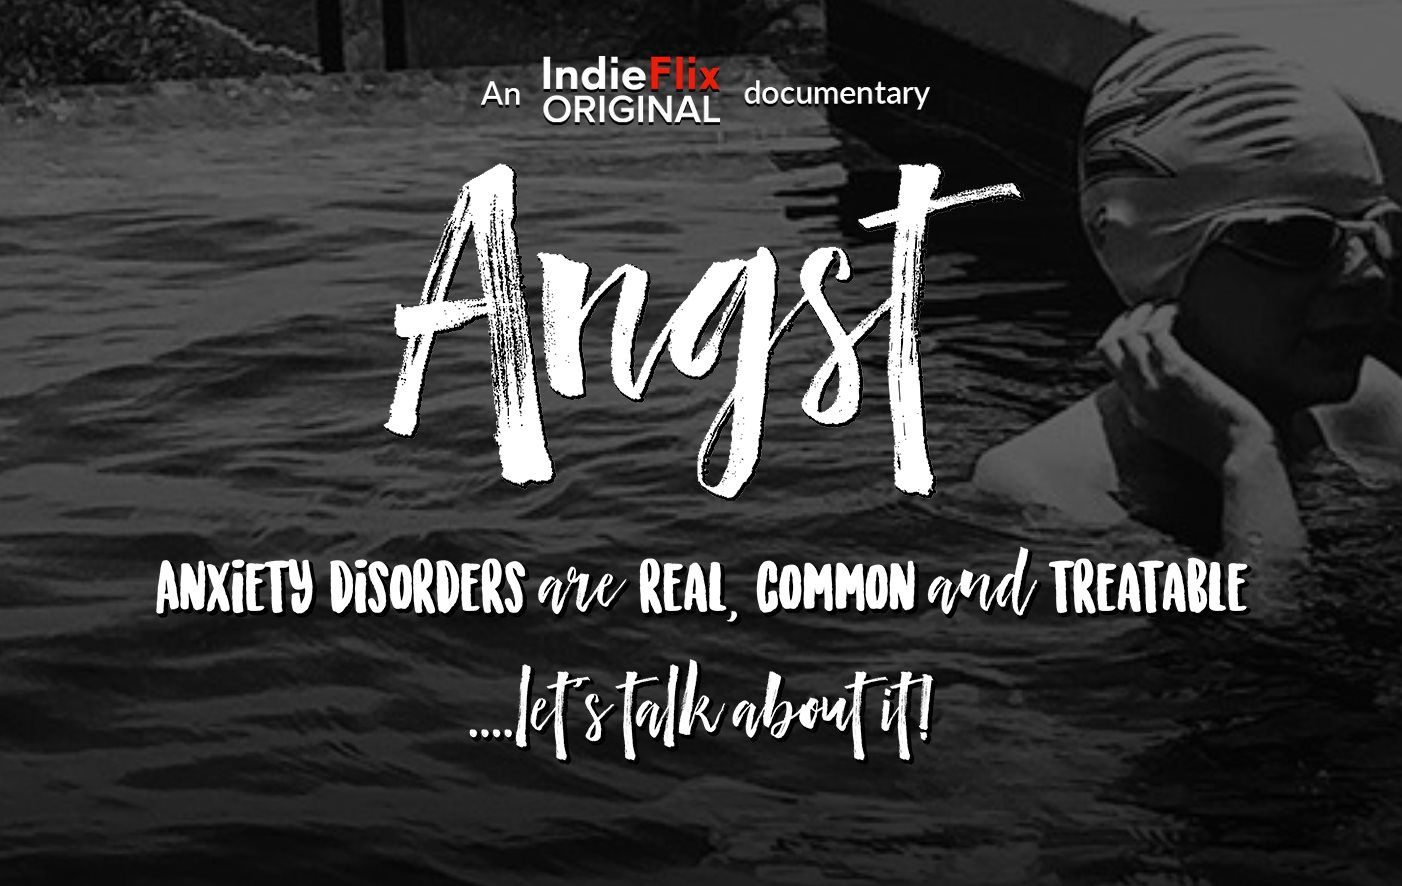 Angst: The Documentary